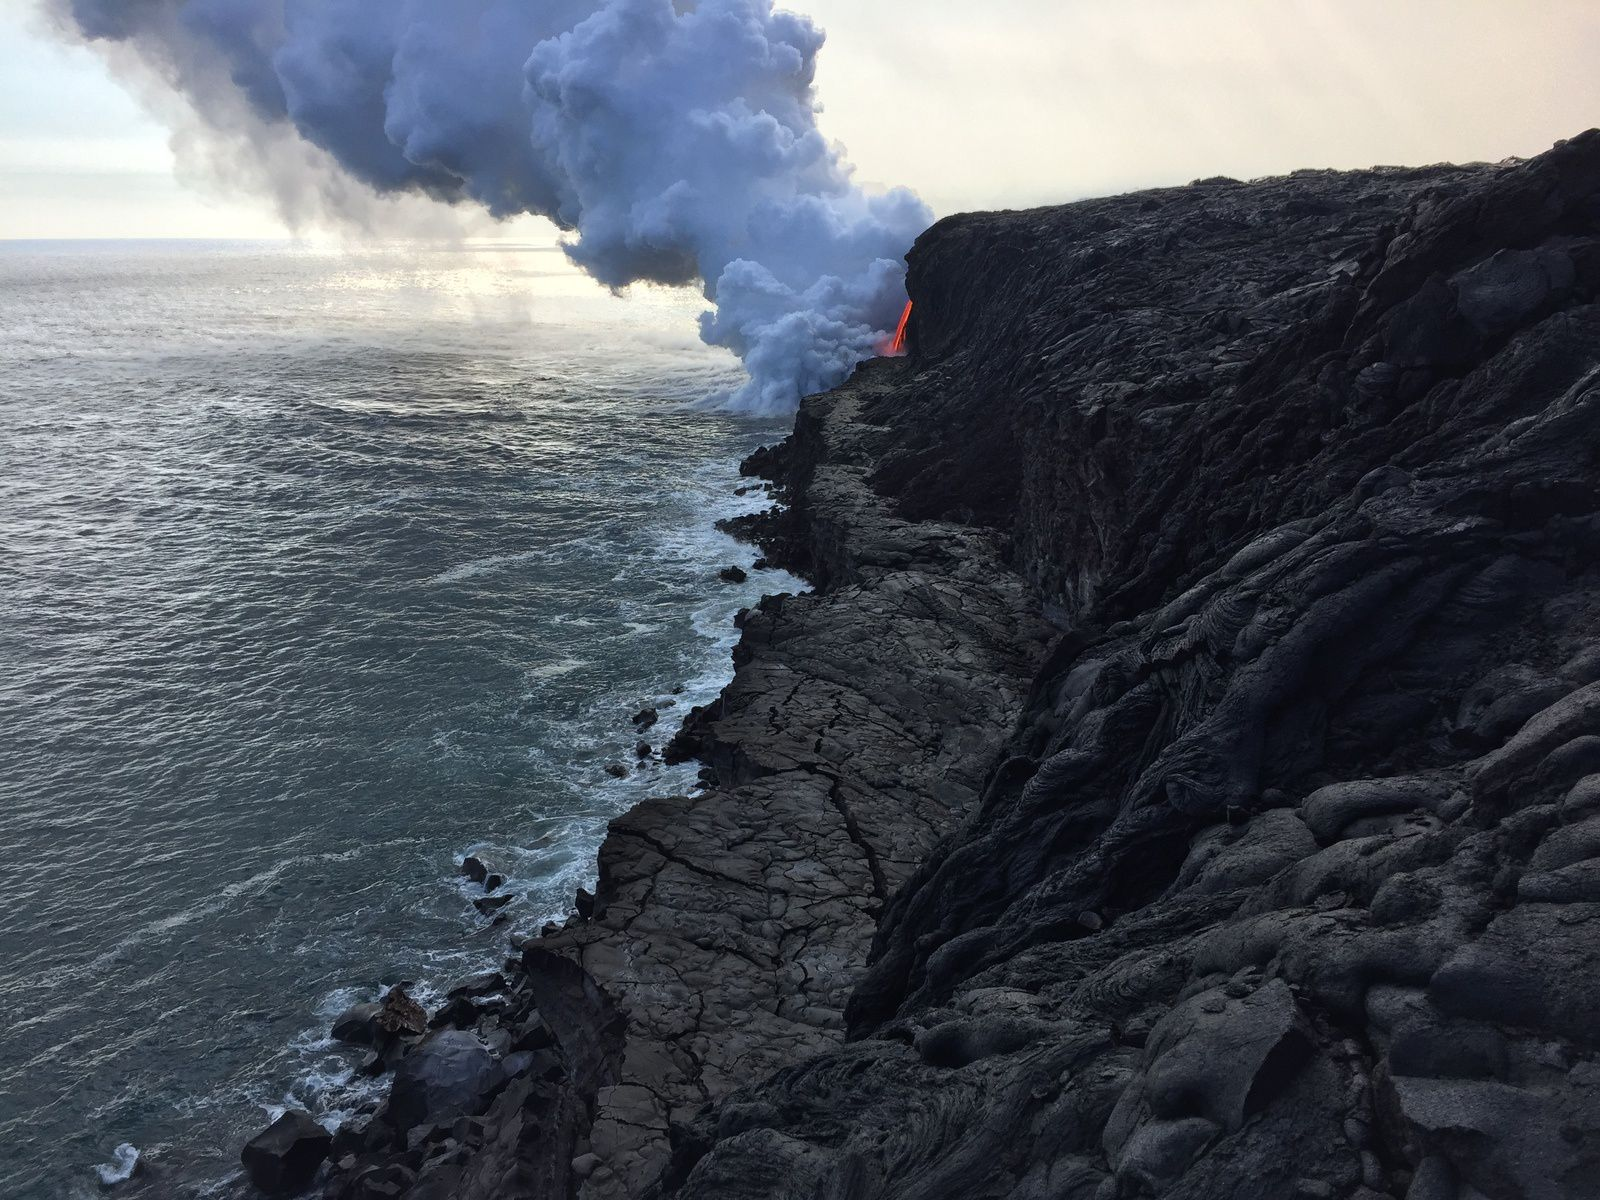 Kilauea / Kamokuna - Cracks in the remaining part of the lava delta after the collapse - HVO